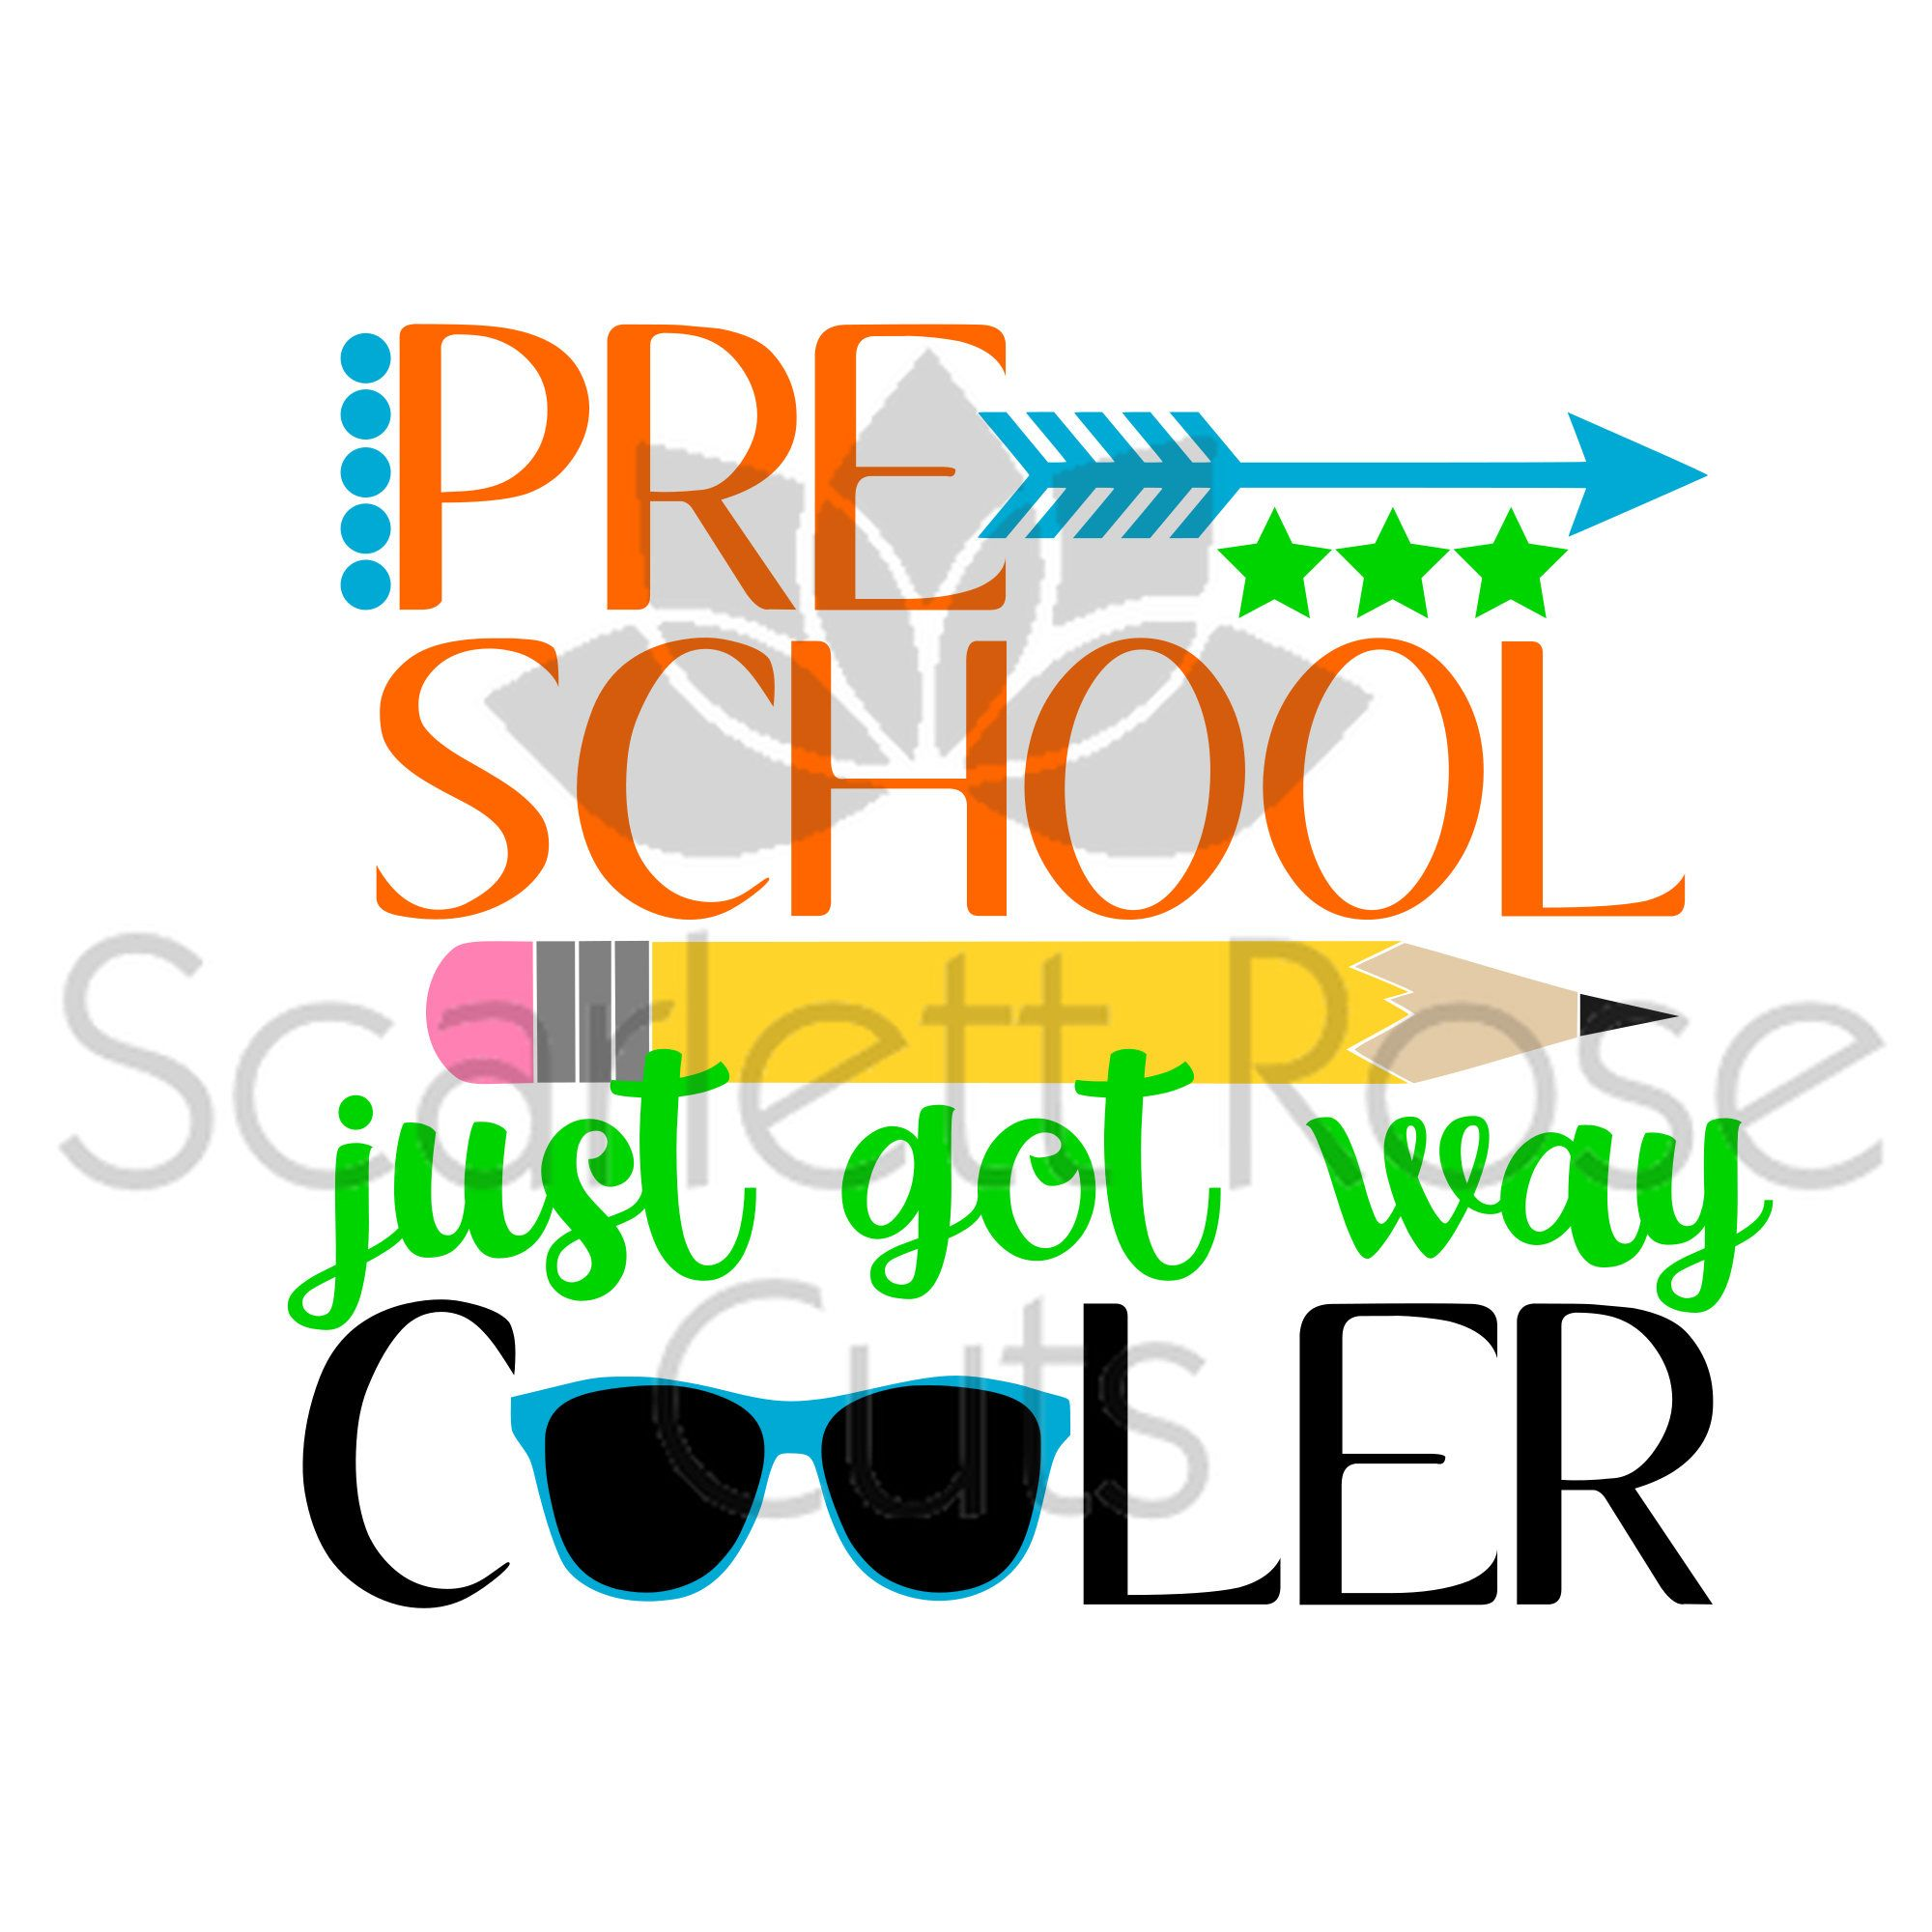 2000x2000 Back To School Svg, Preschool Just Got Way Cooler, First Day